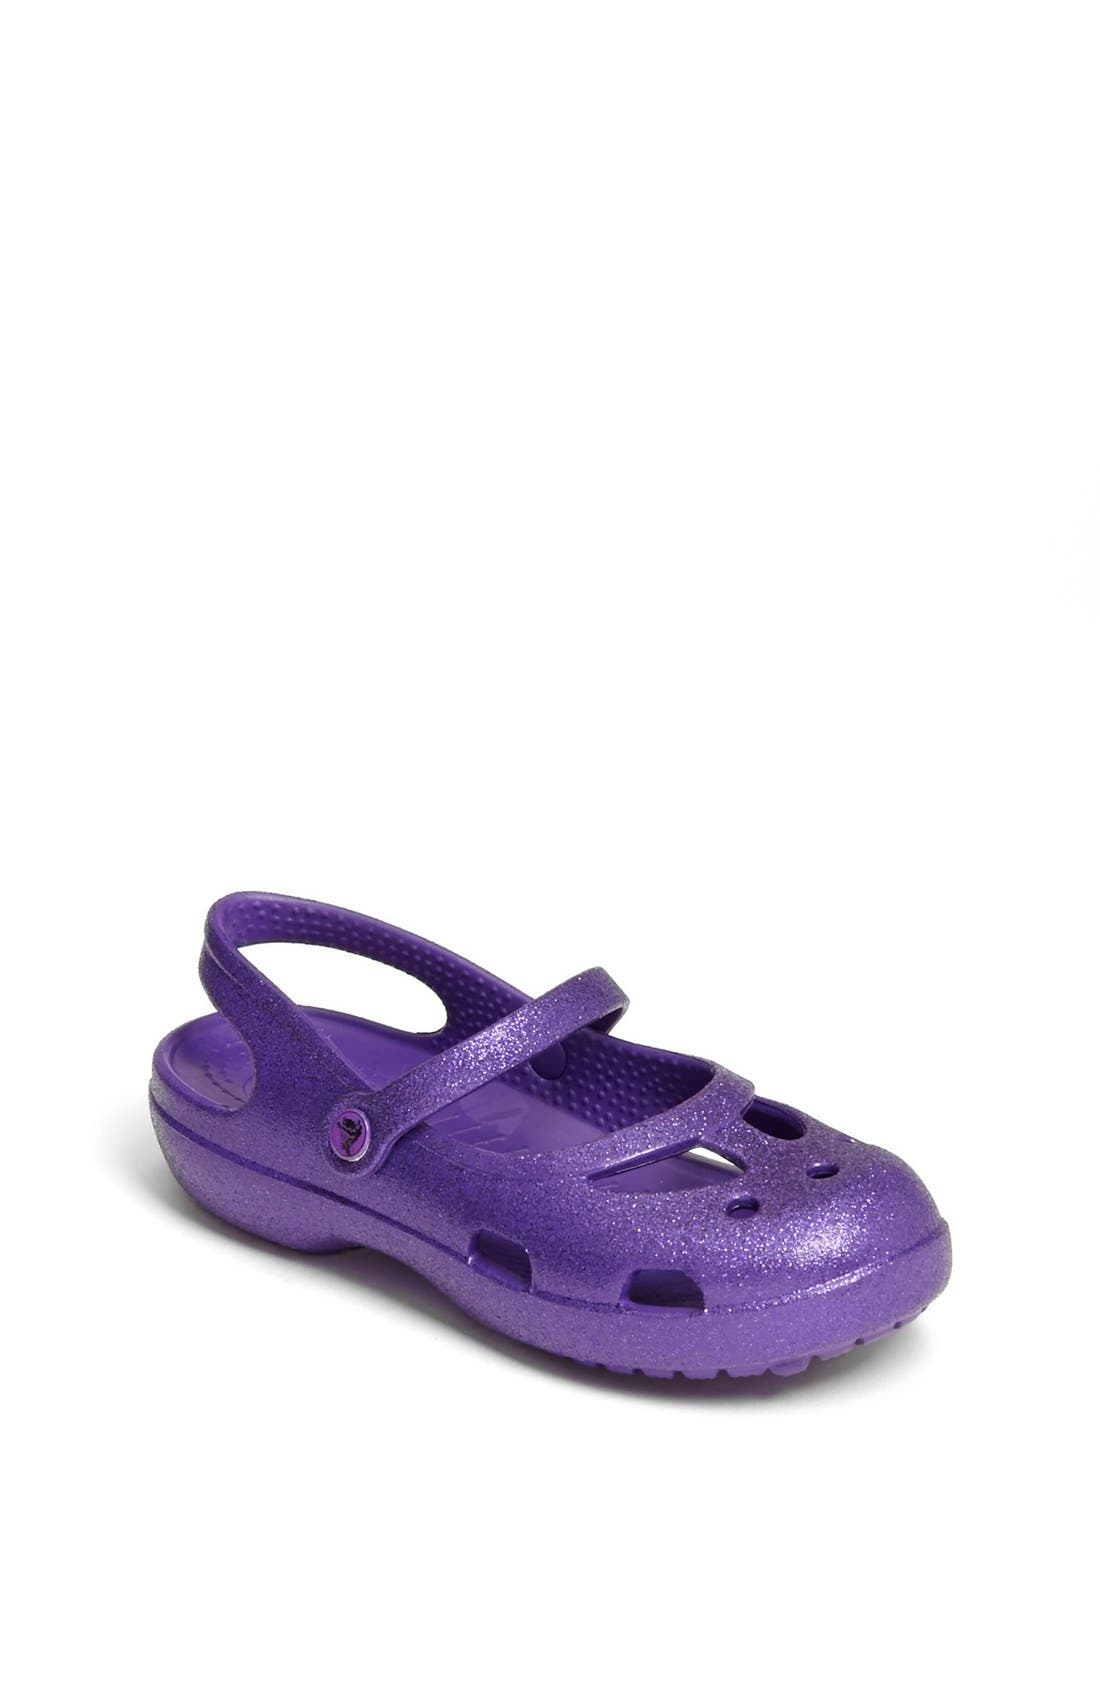 Main Image - CROCS™ 'Shayna' Sandal (Baby, Walker, Toddler & Little Kid)